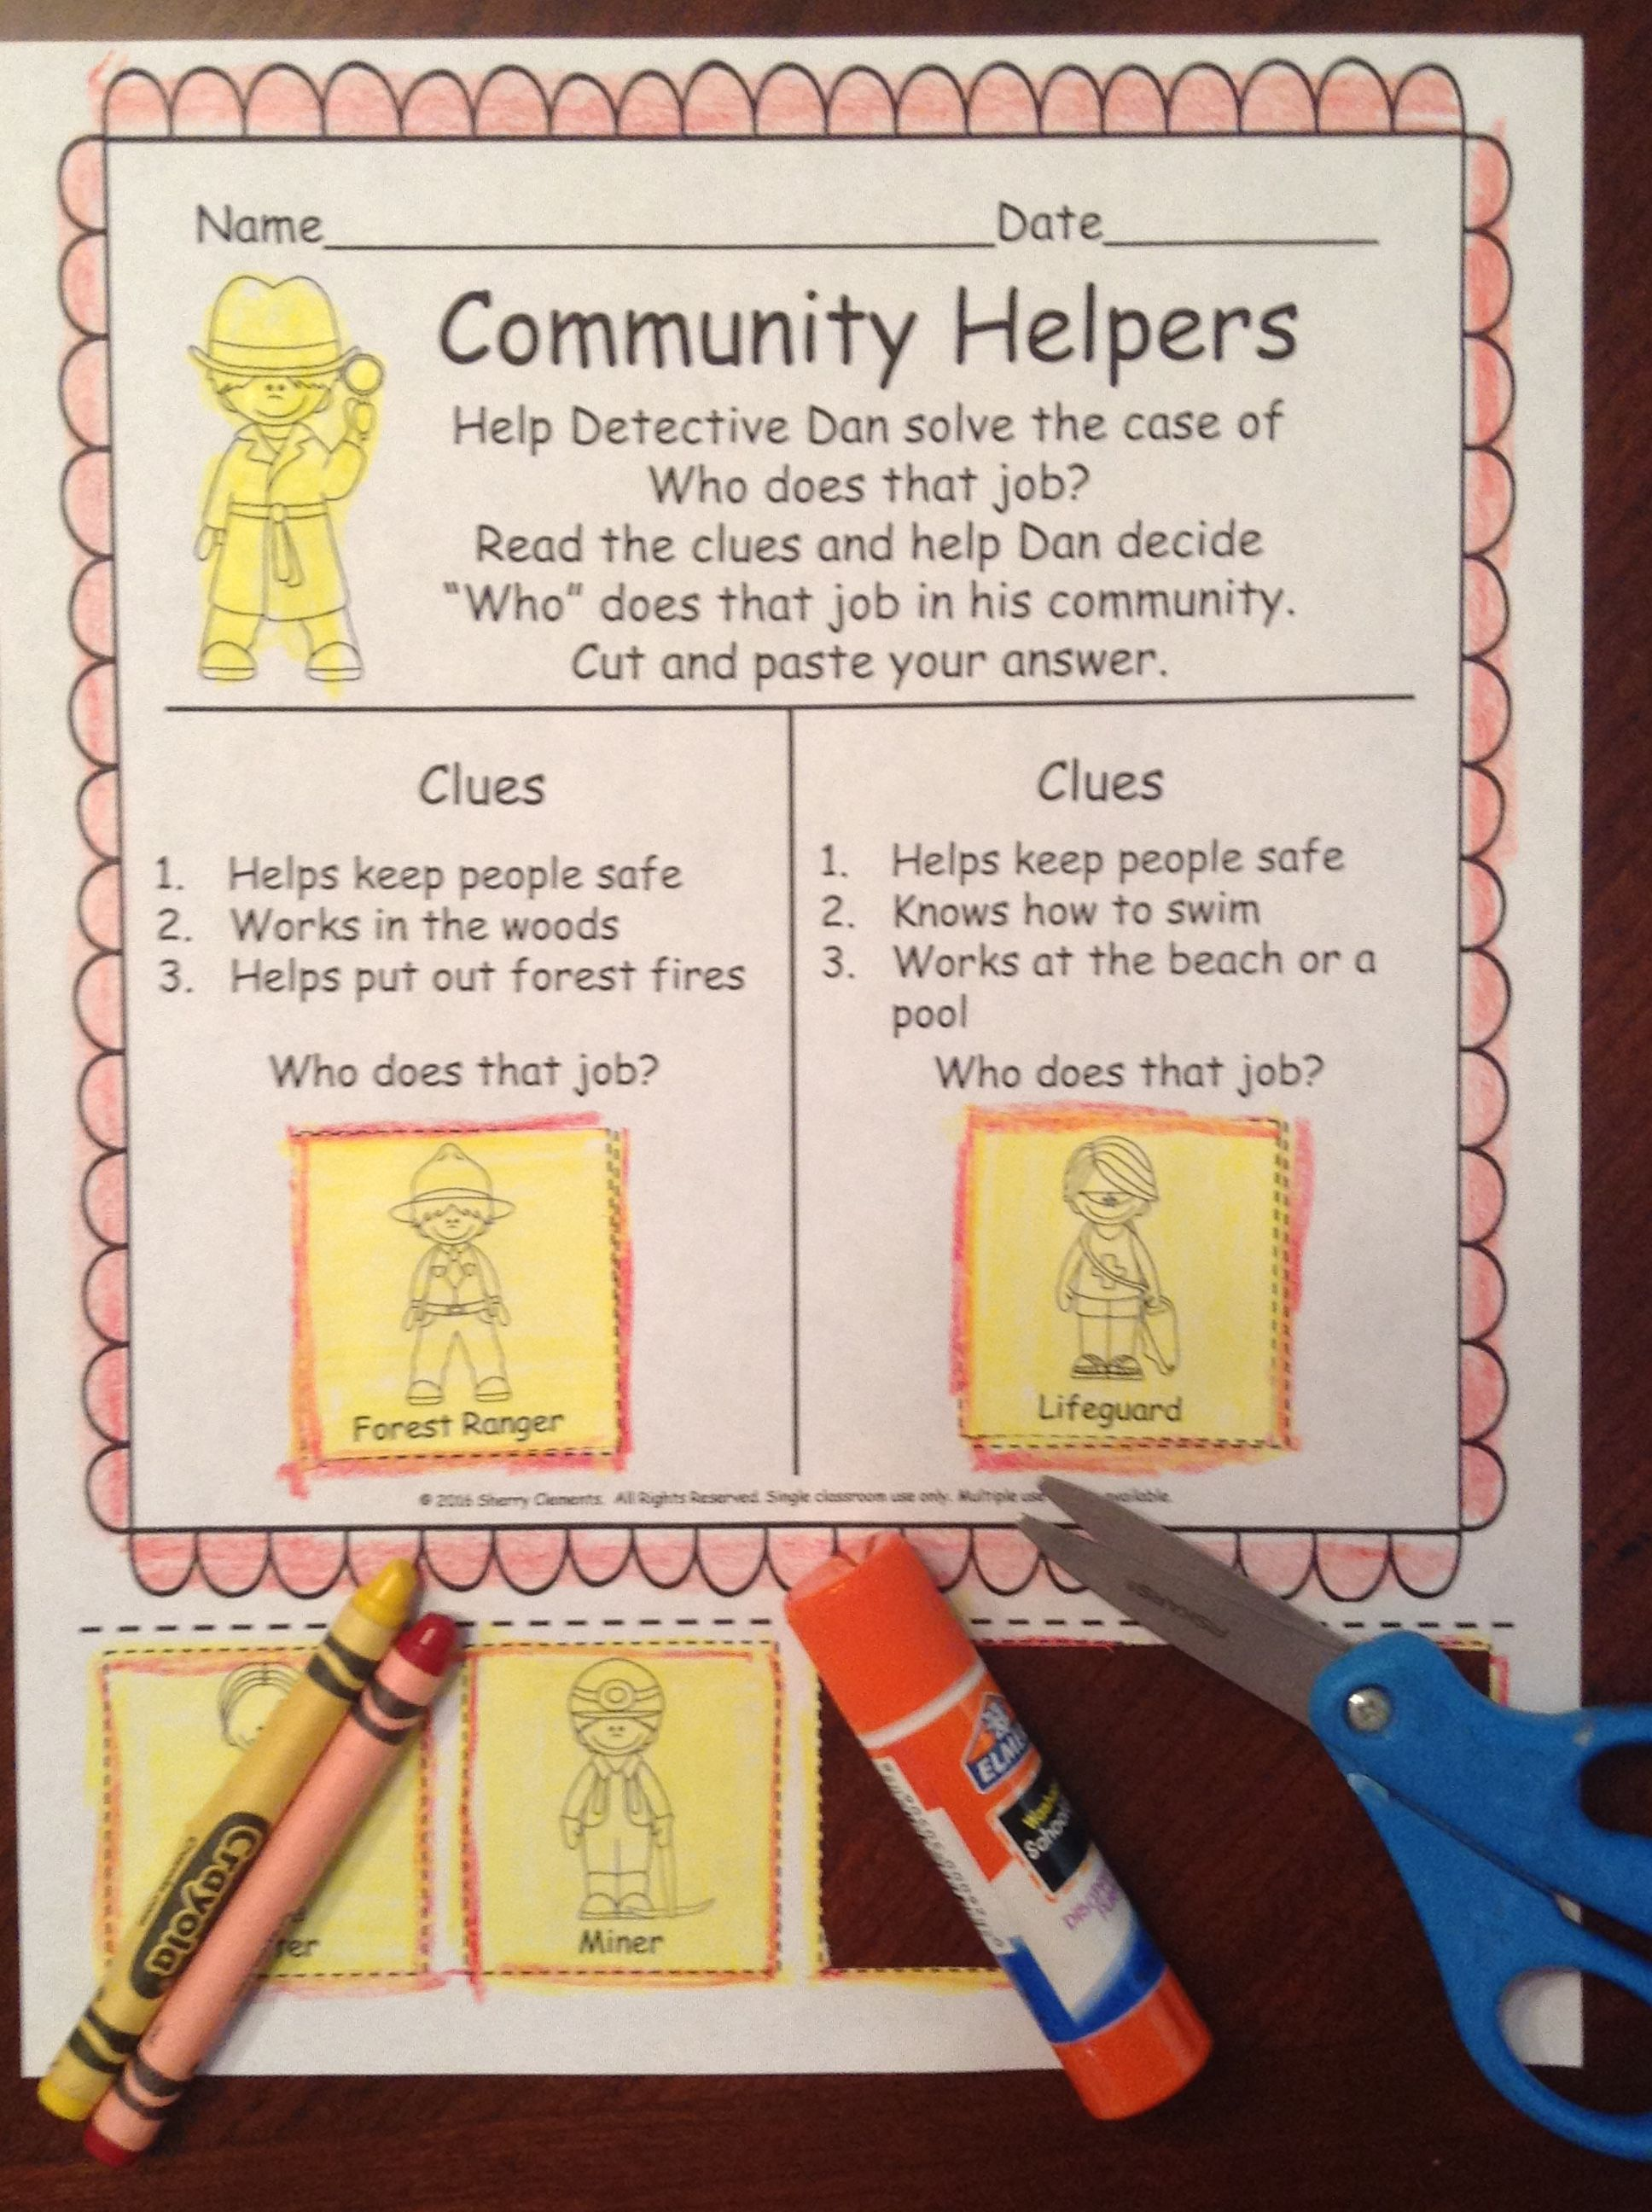 Community Helpers Detective Dan And The Case Of Who Does